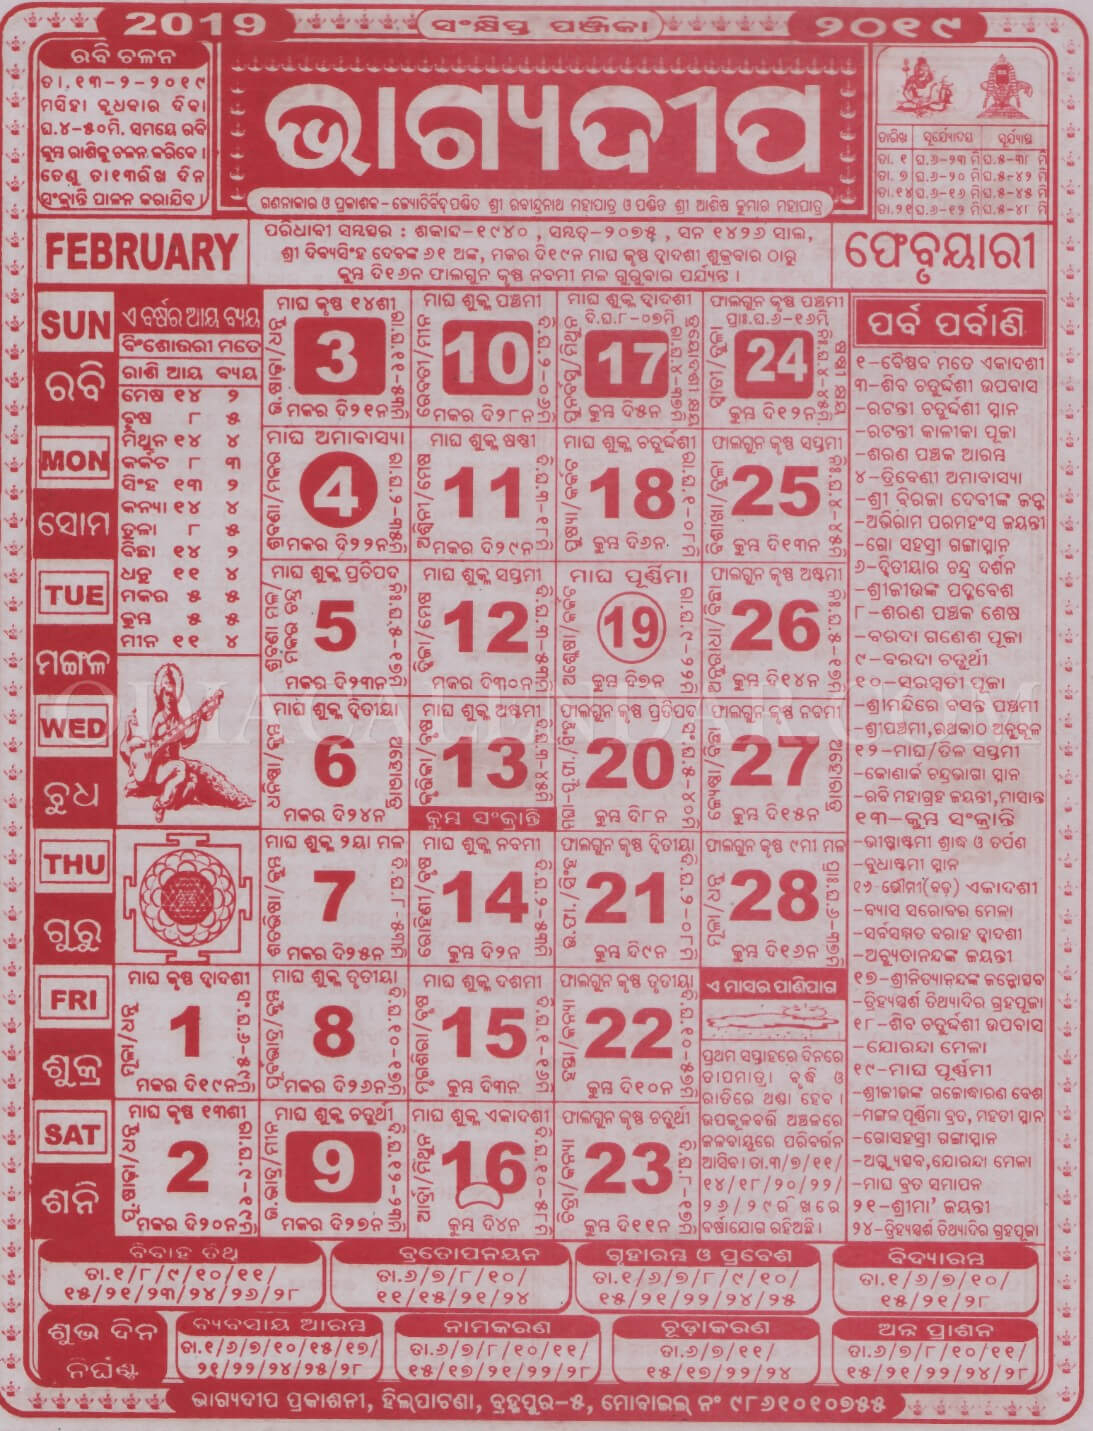 Odia Bhagyadeep Calendar 2020 February View And Download Free regarding Odia Calendar February 2020